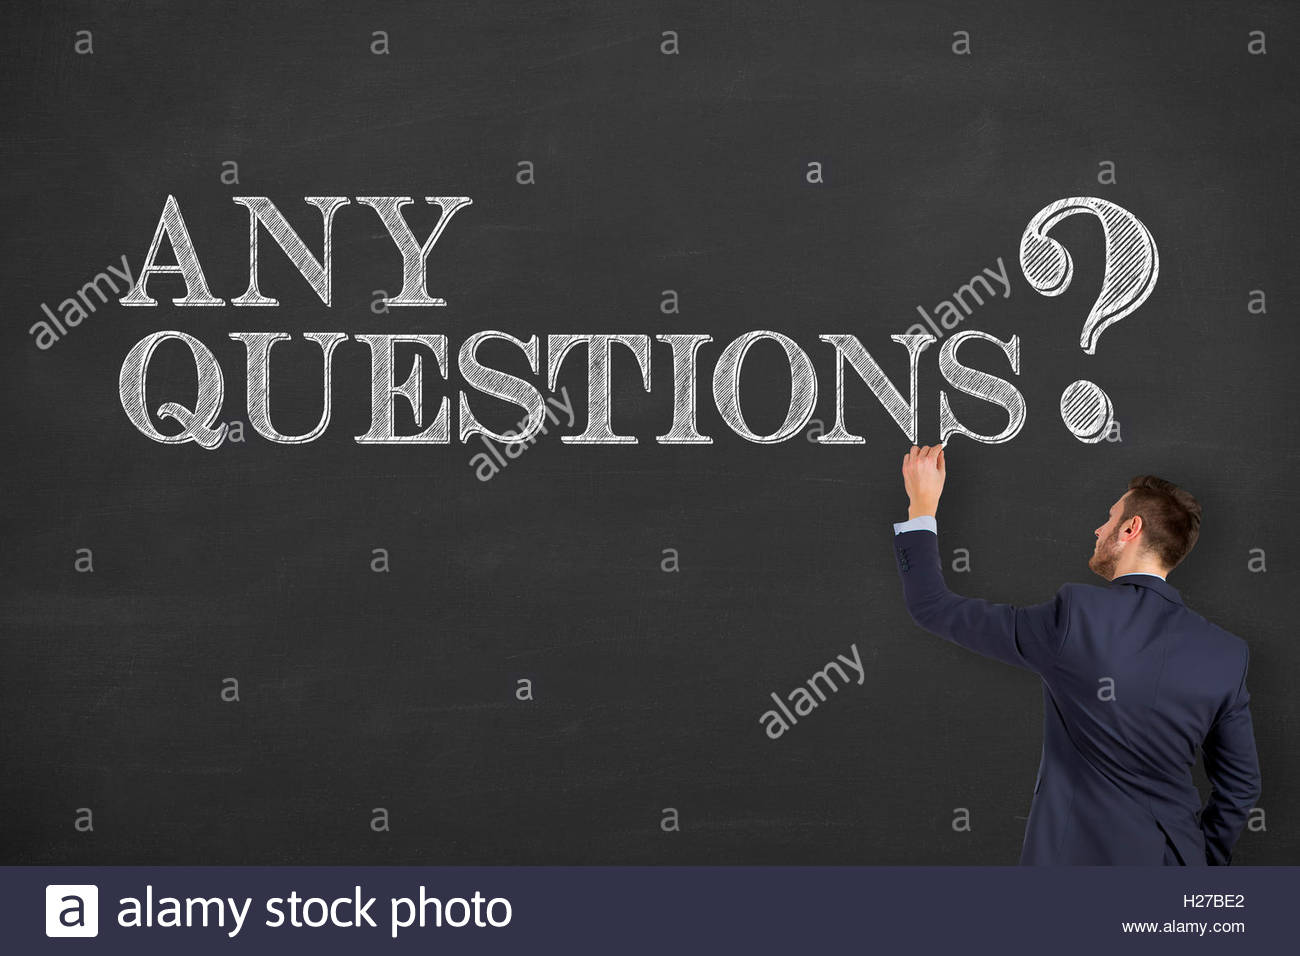 Any Questions on Chalkboard - Stock Image